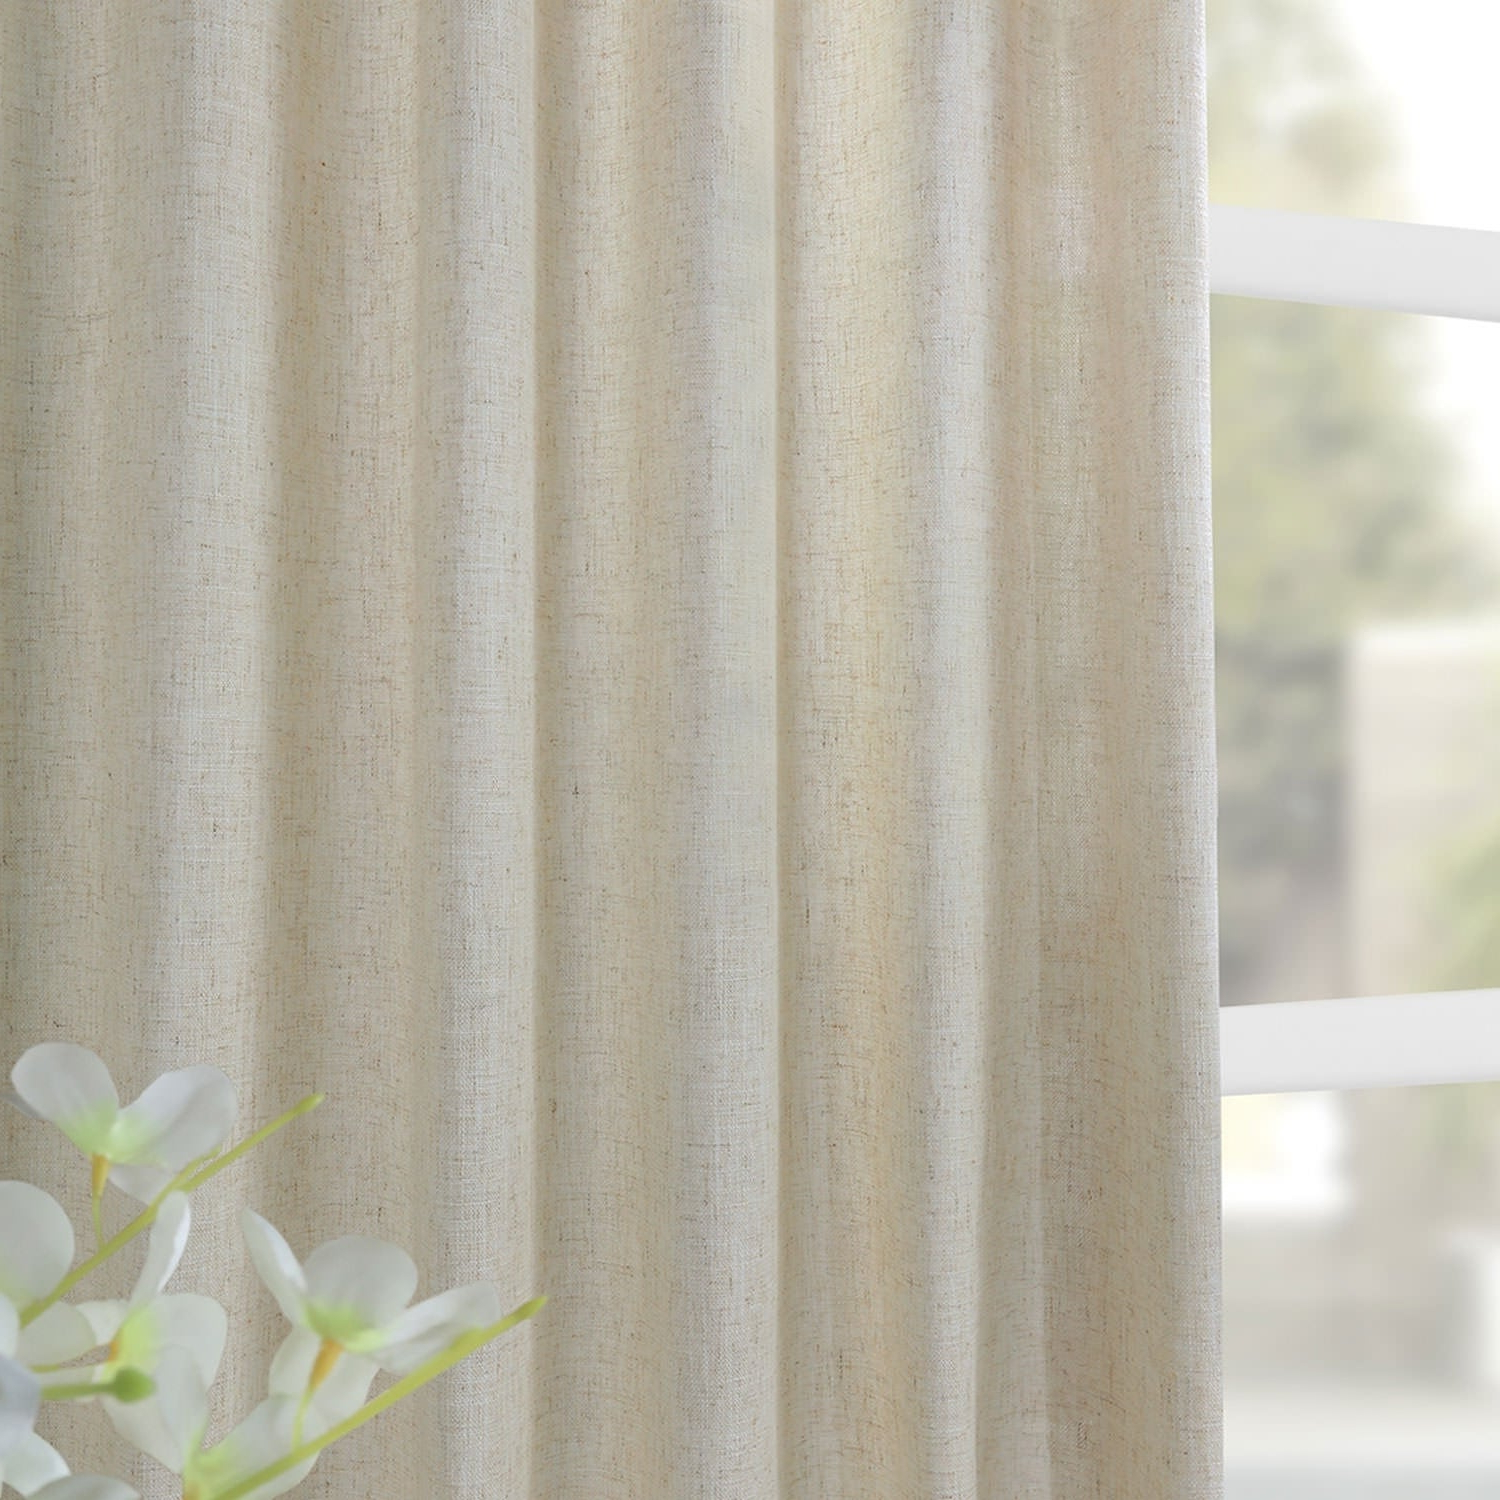 Heavy Faux Linen Single Curtain Panel Within Favorite Heavy Faux Linen Single Curtain Panels (Gallery 9 of 20)